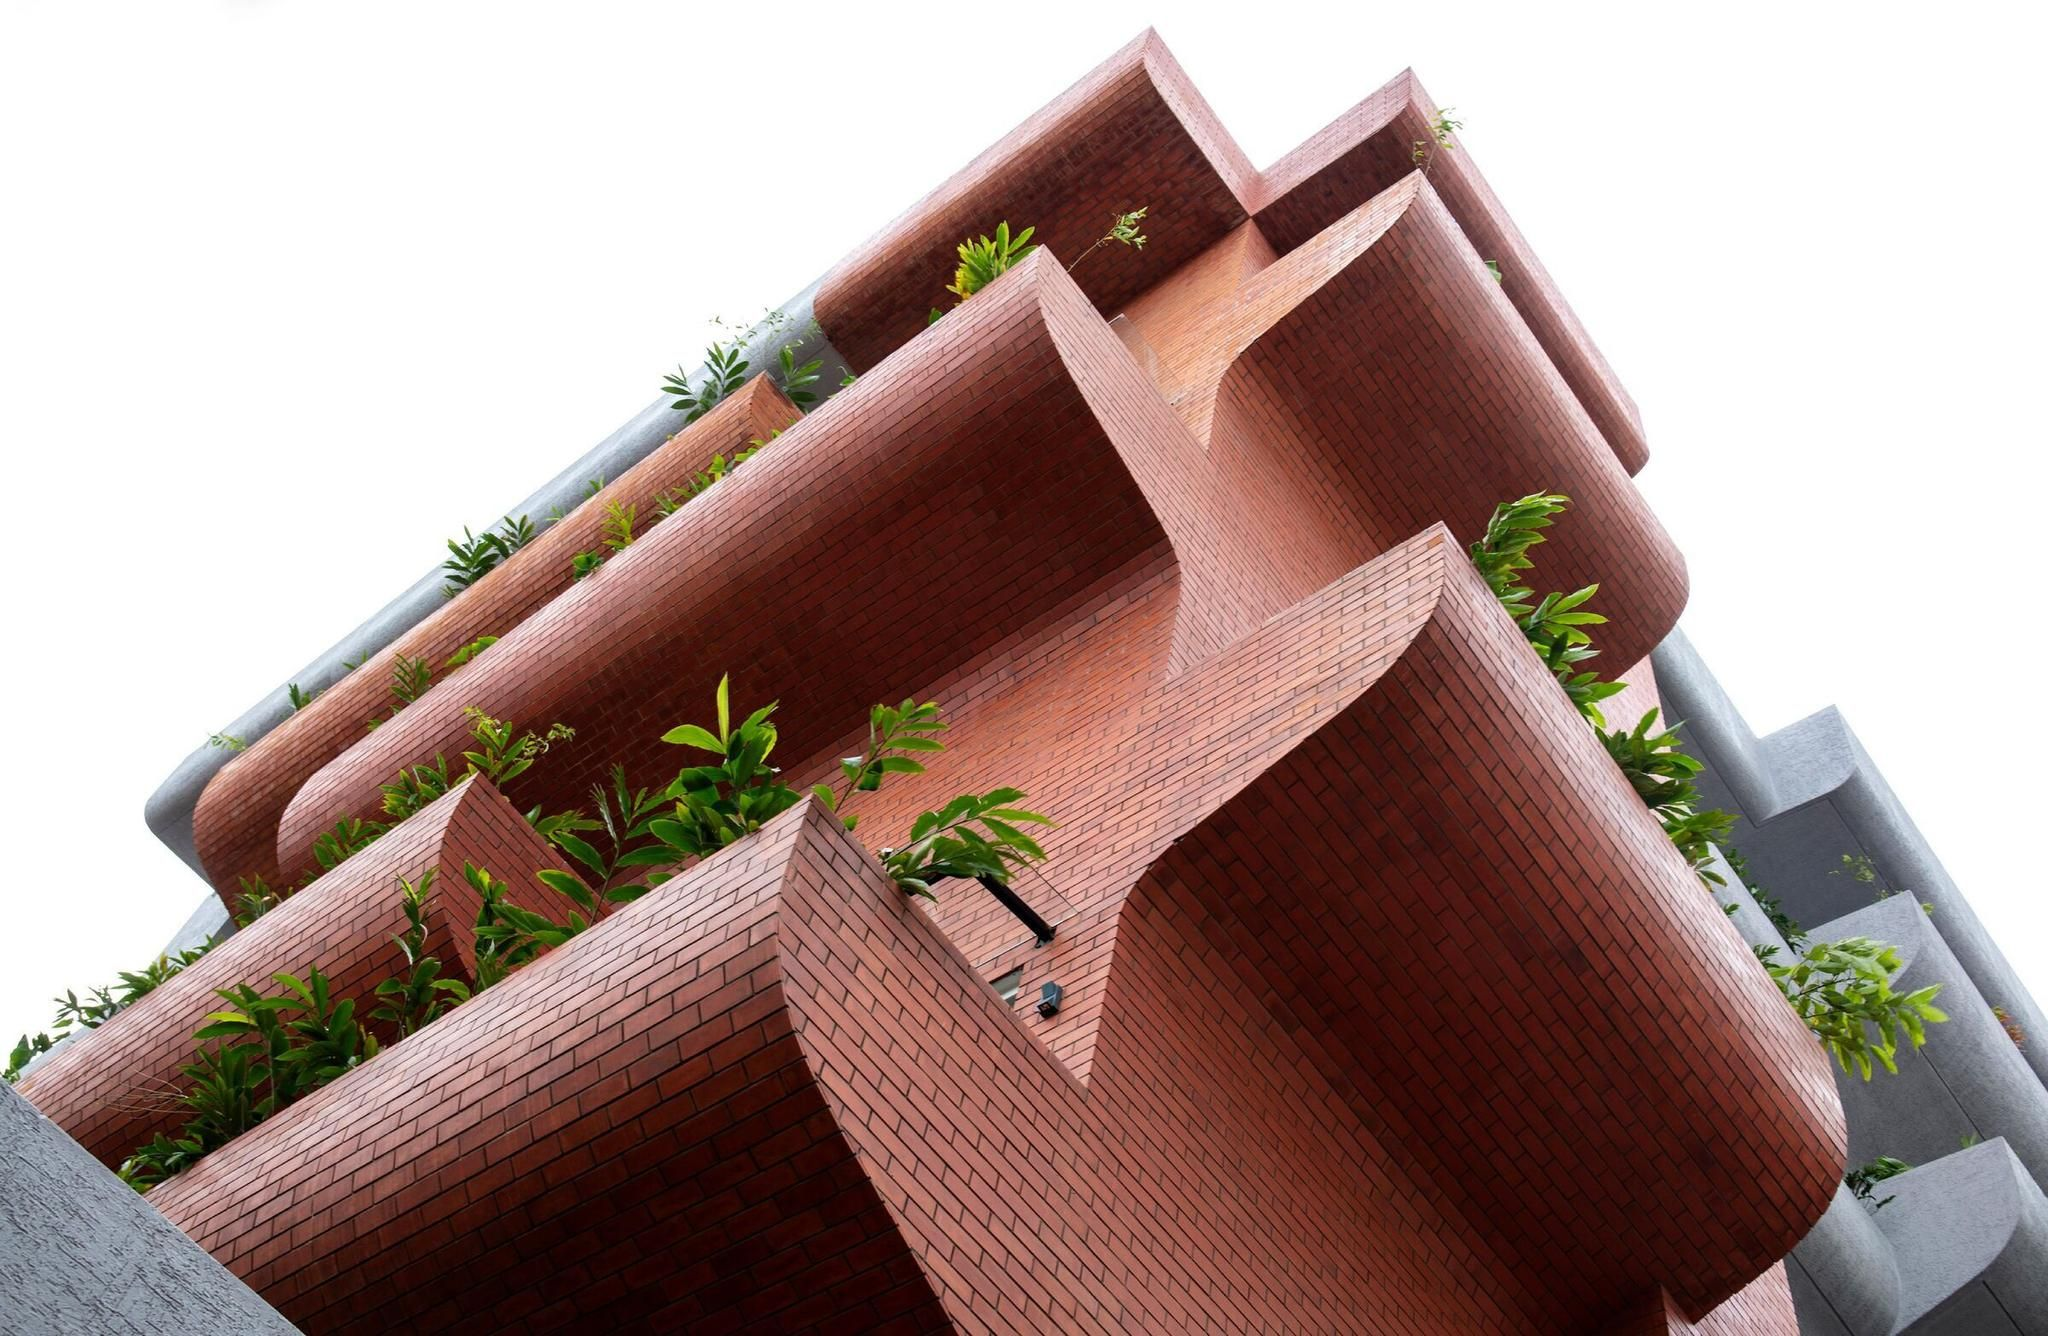 Balconies become sculptural intermediate landscapes in Bangalore